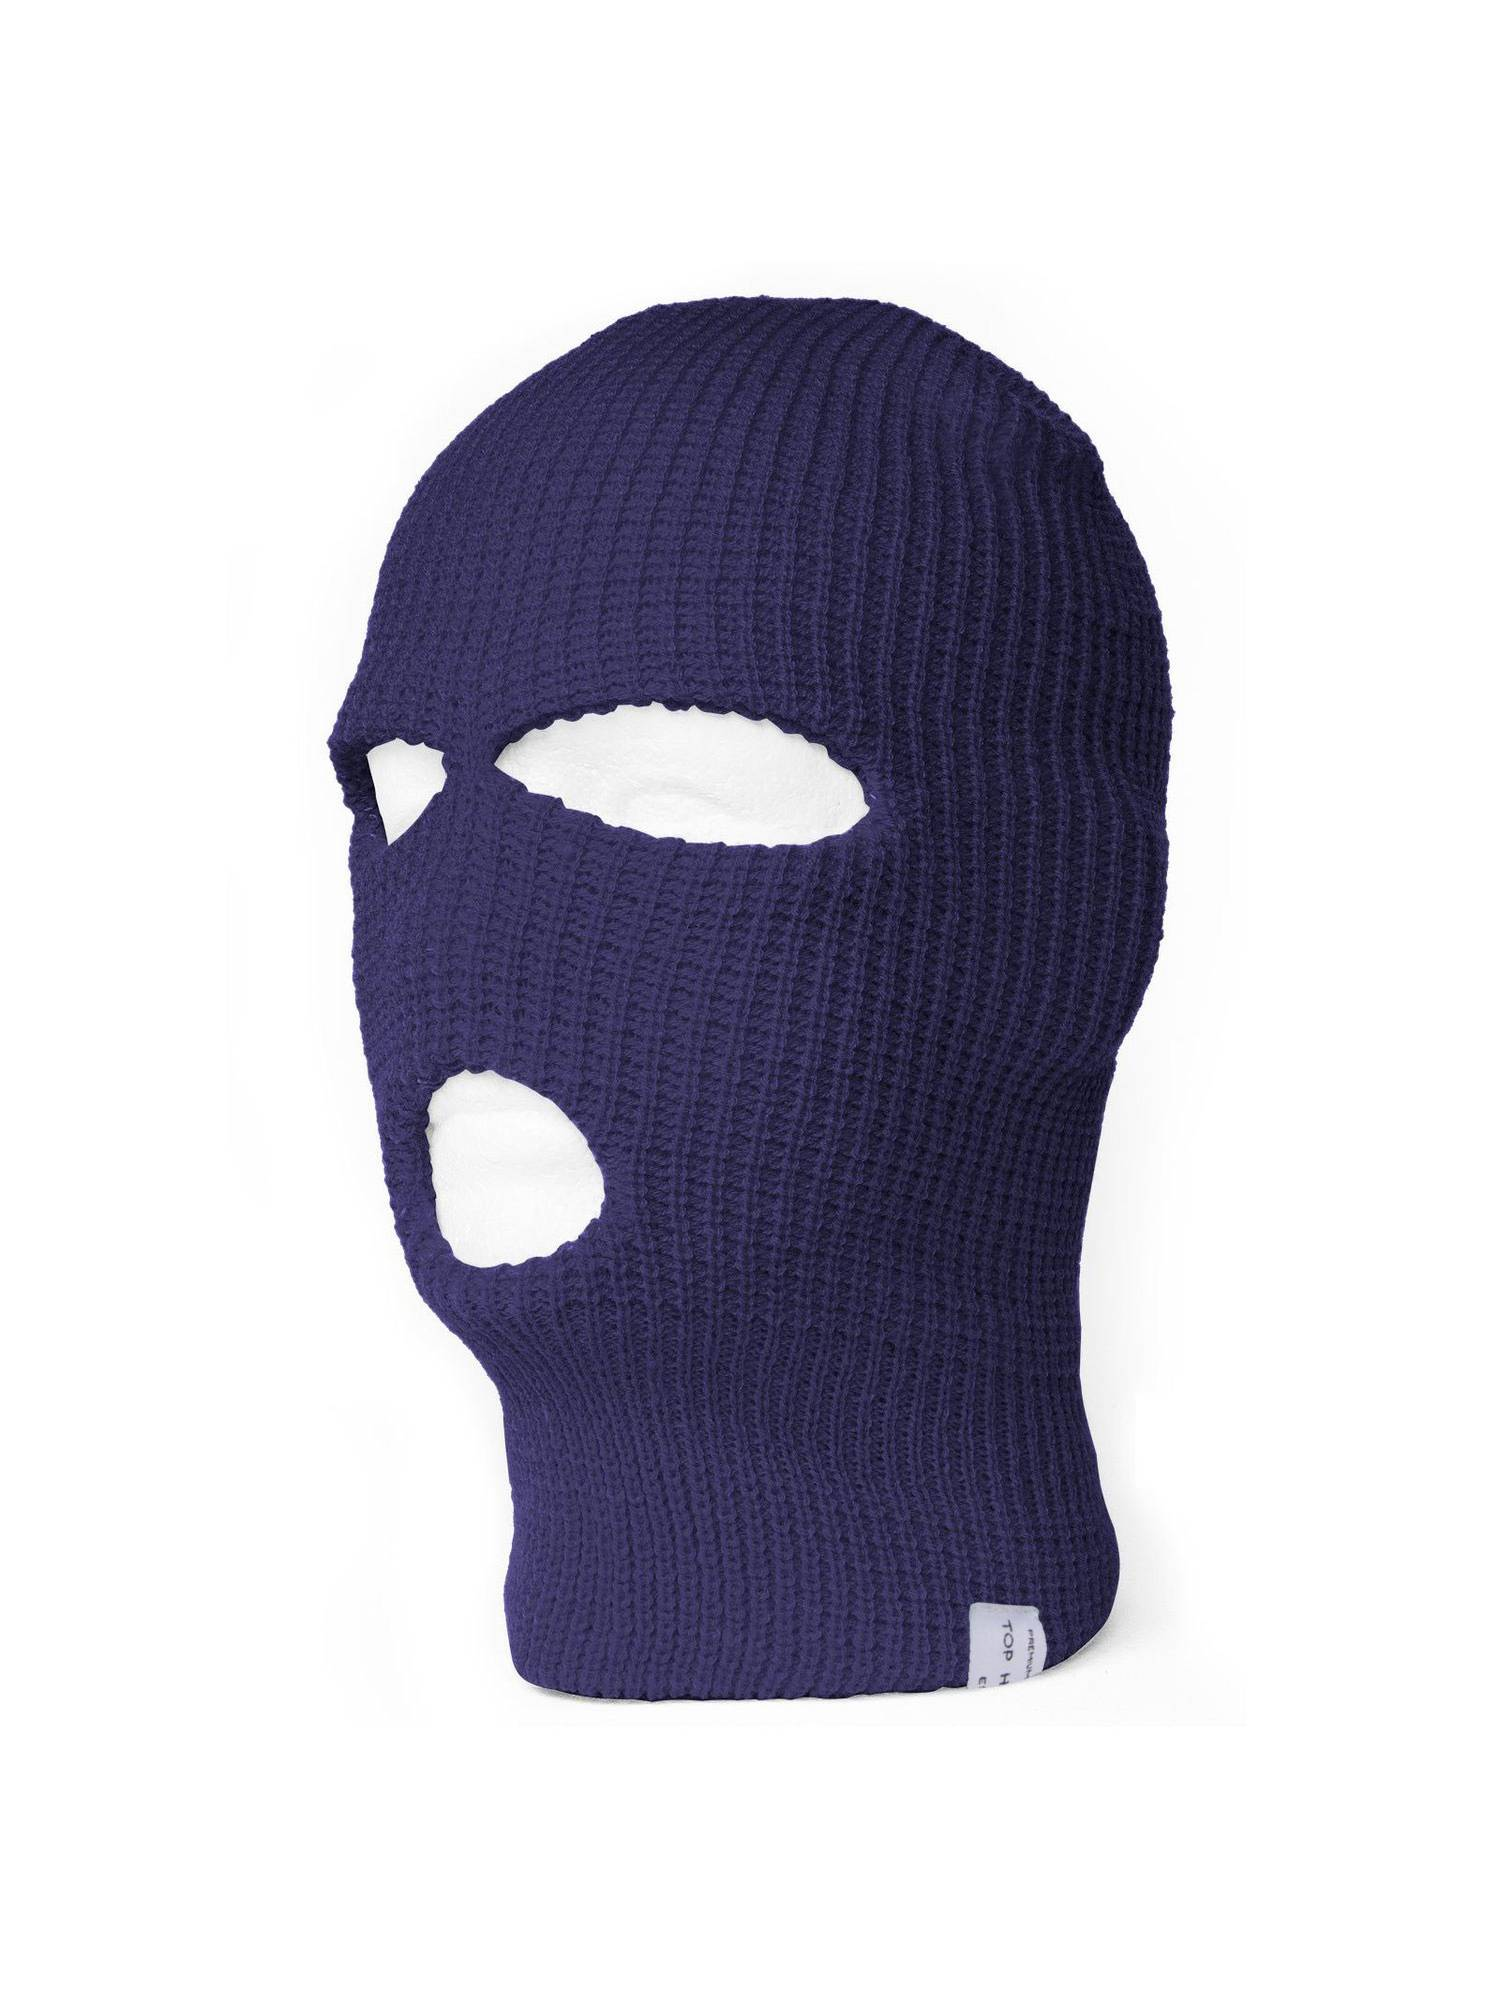 ski face mask beanie hat with 3 holes lace up in 7c386 75aff ... e78a944d55e1